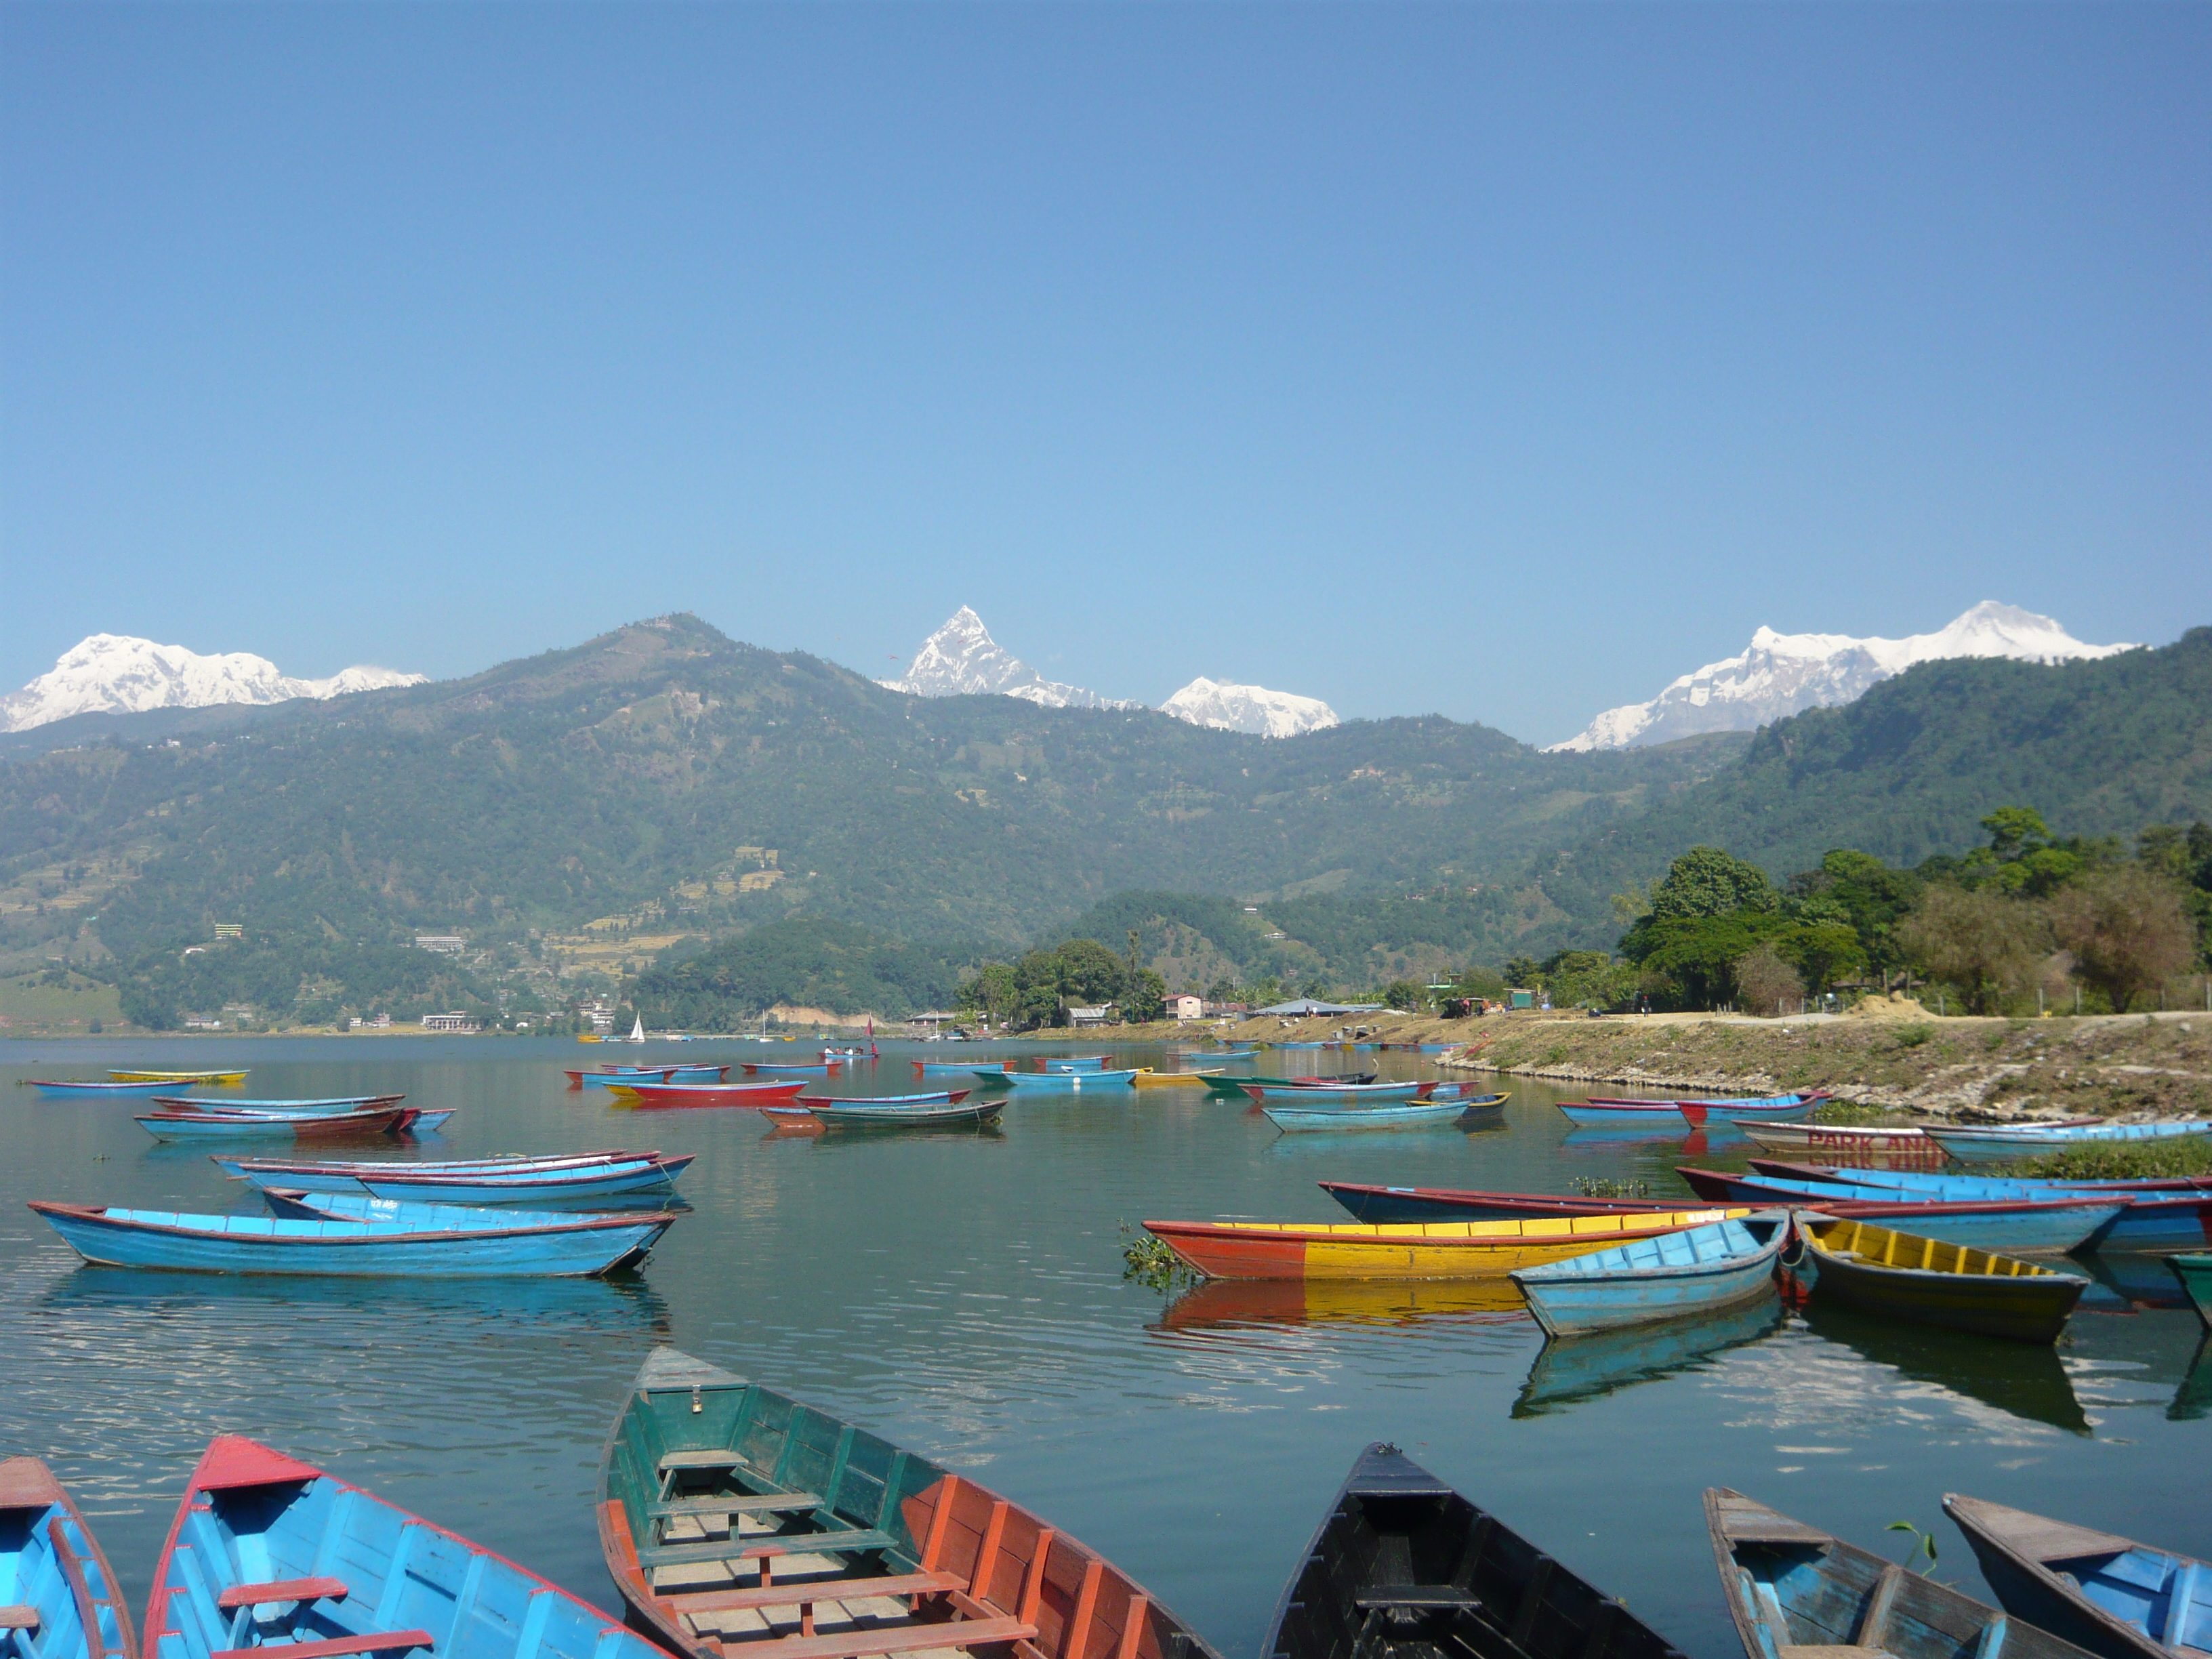 Phewa Tal Pokhara, The boats of Pokhara | the thirdeyeworld